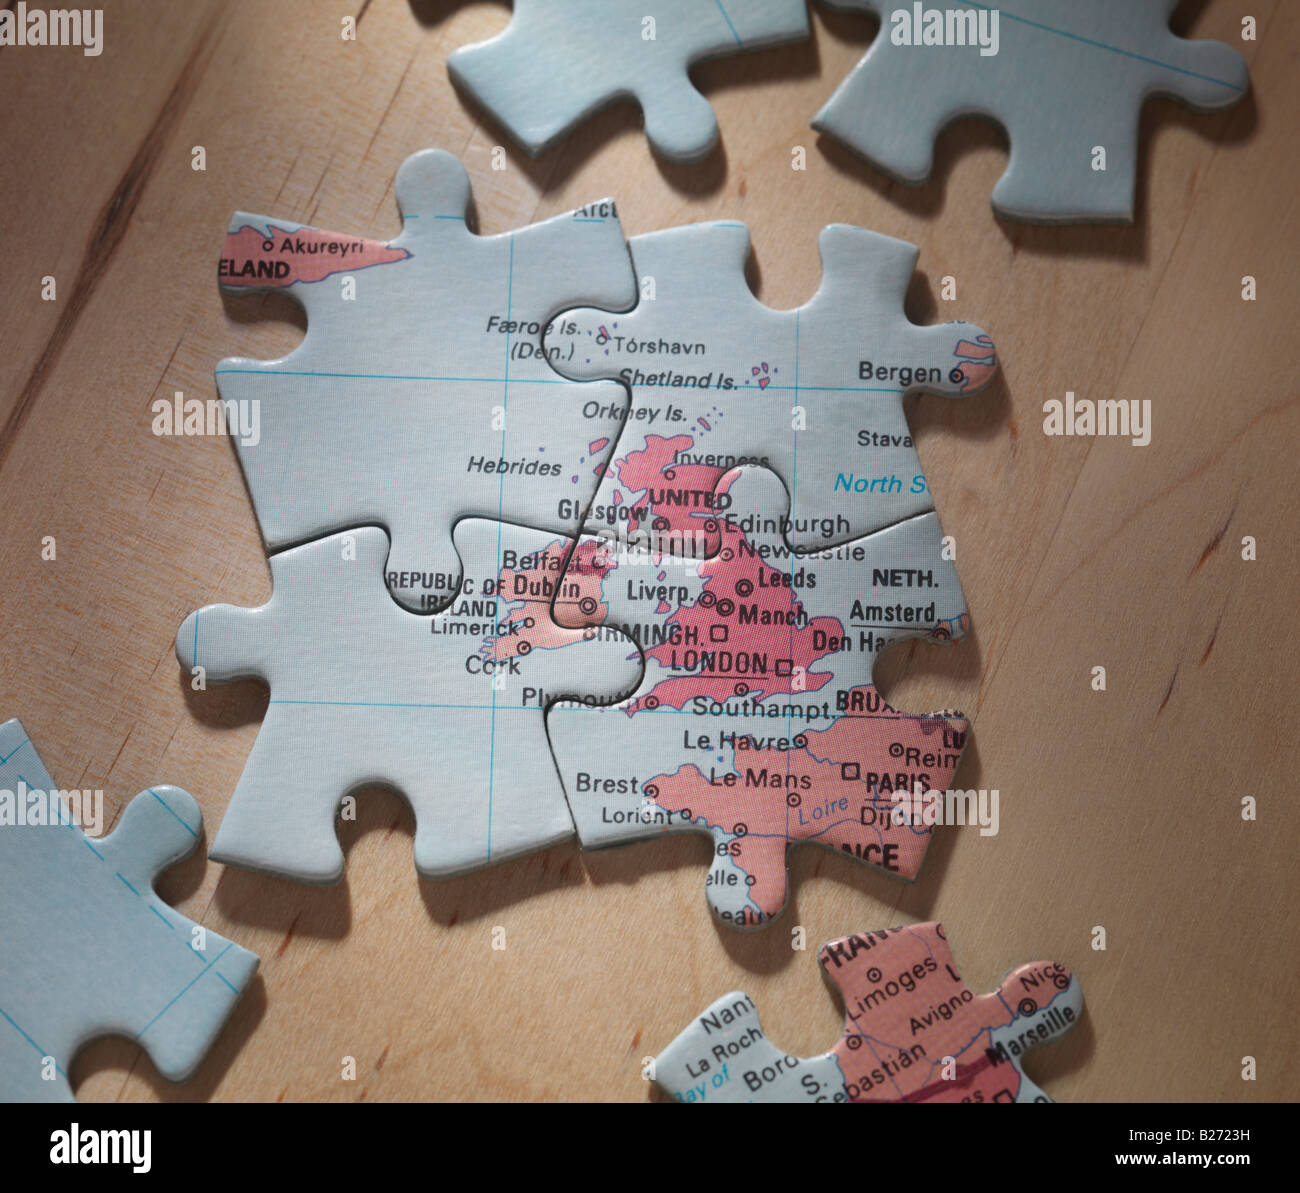 British Isles on jigsaw puzzle - Stock Image